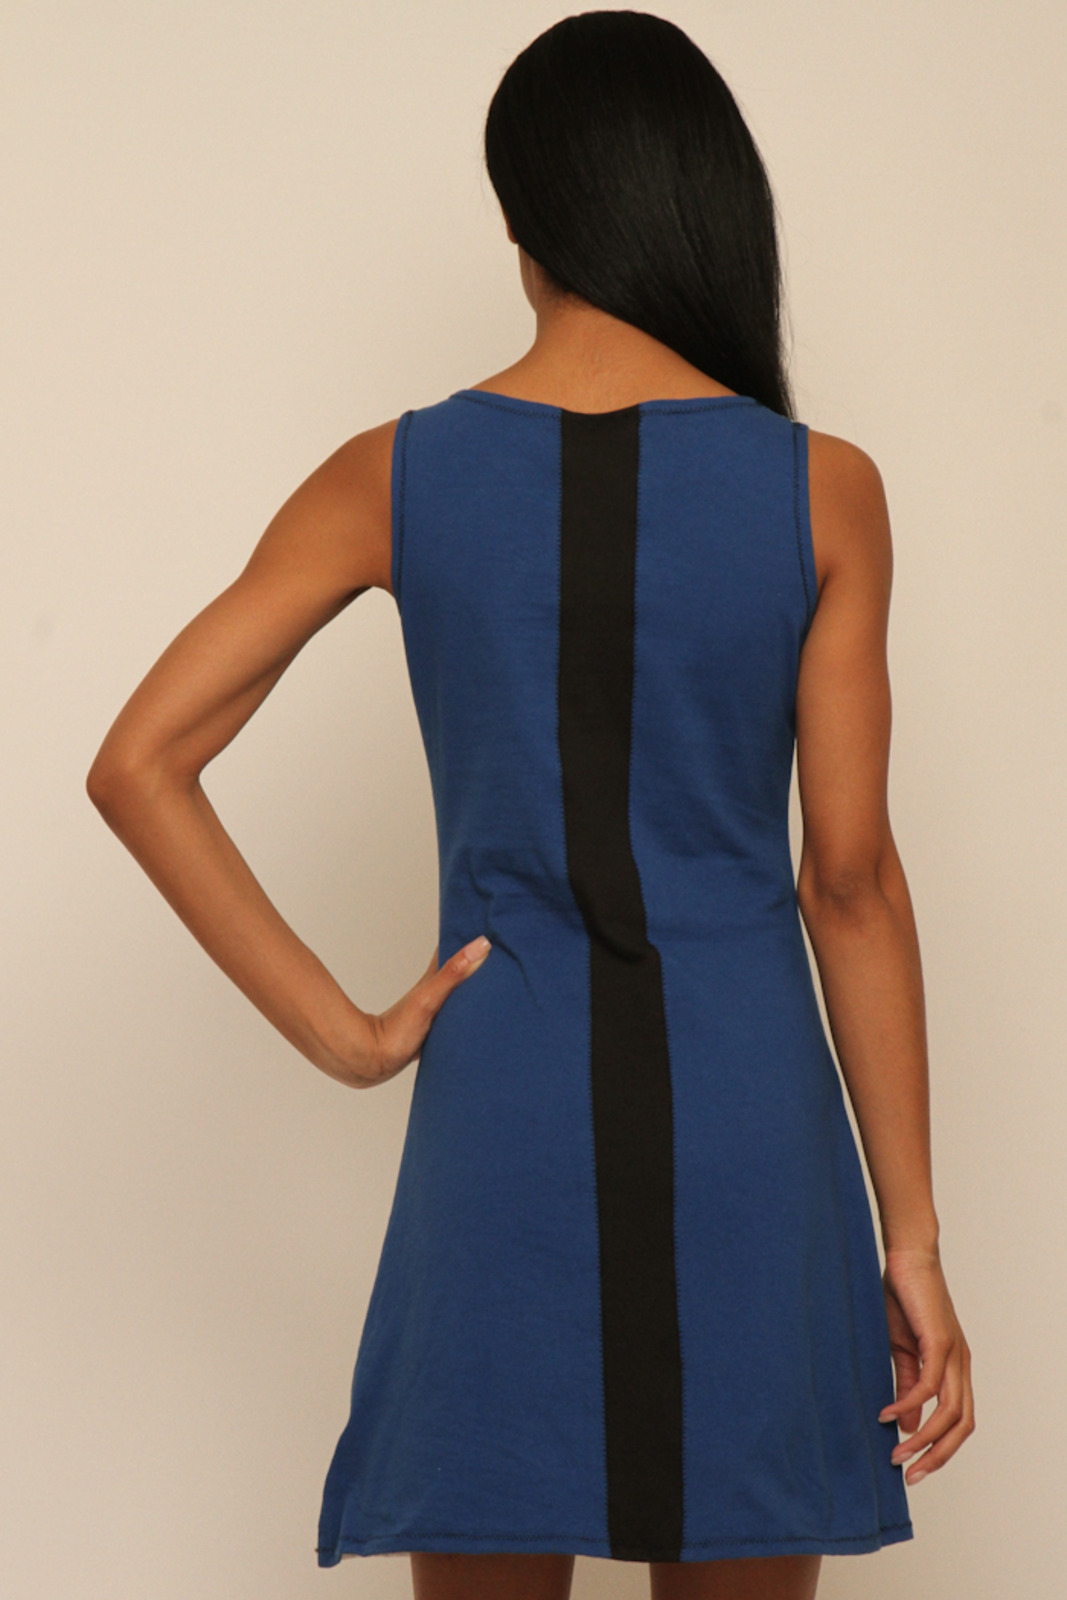 Lois Eastlund Mod dress - Back Cropped Image